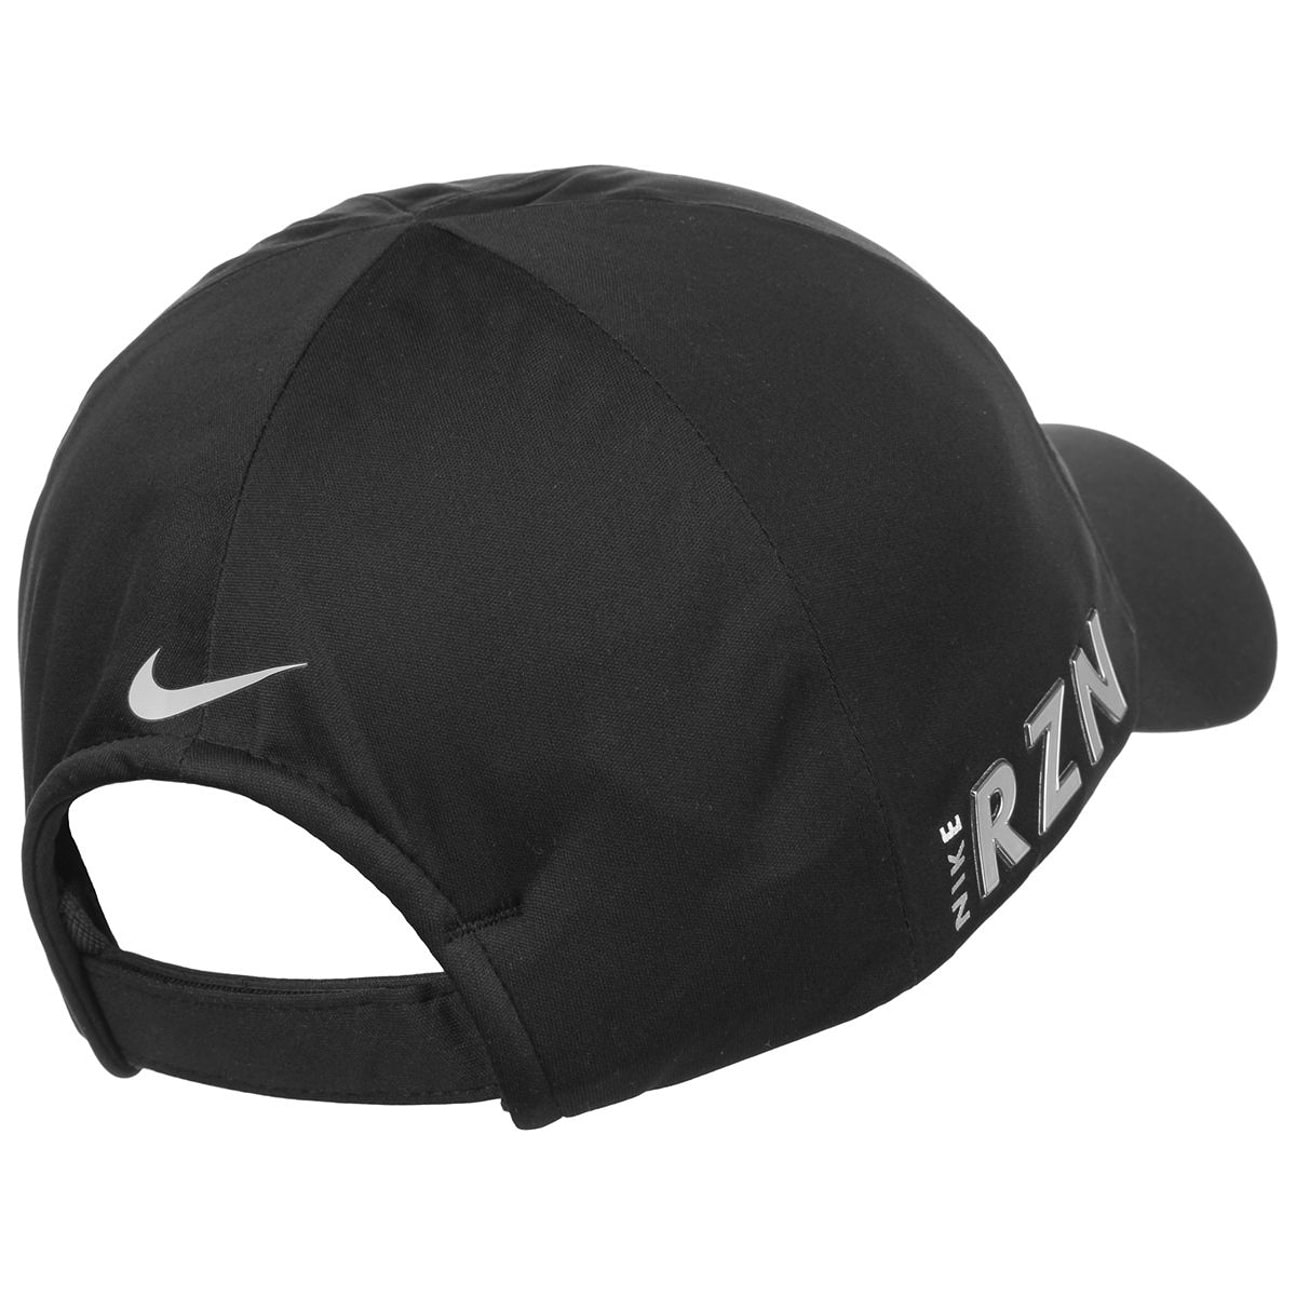 Storm-Fit Tour Golf Cap by Nike - black 2 ... 6fad70bdcfa